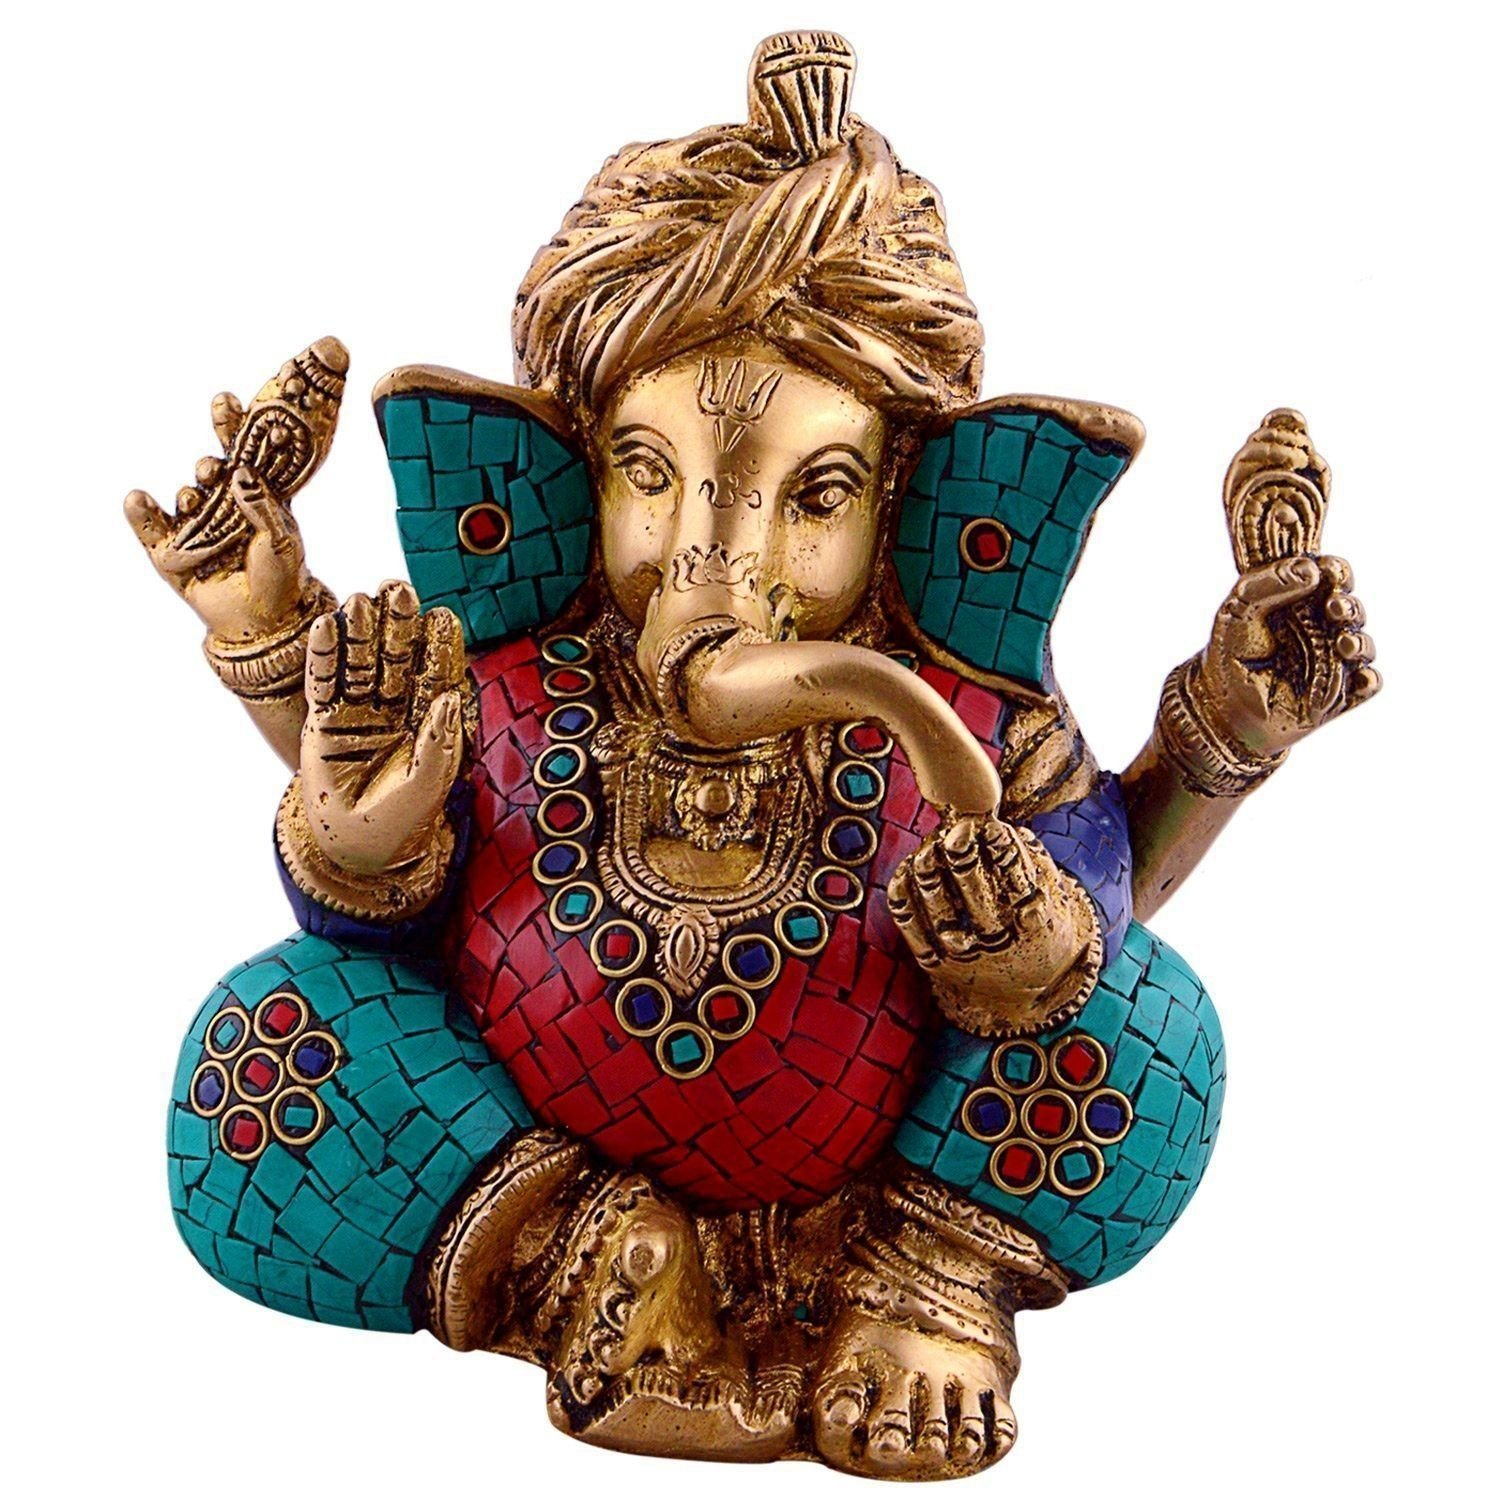 Turquoise Lord Ganesha Wearing Turbon Brass Metal Figure